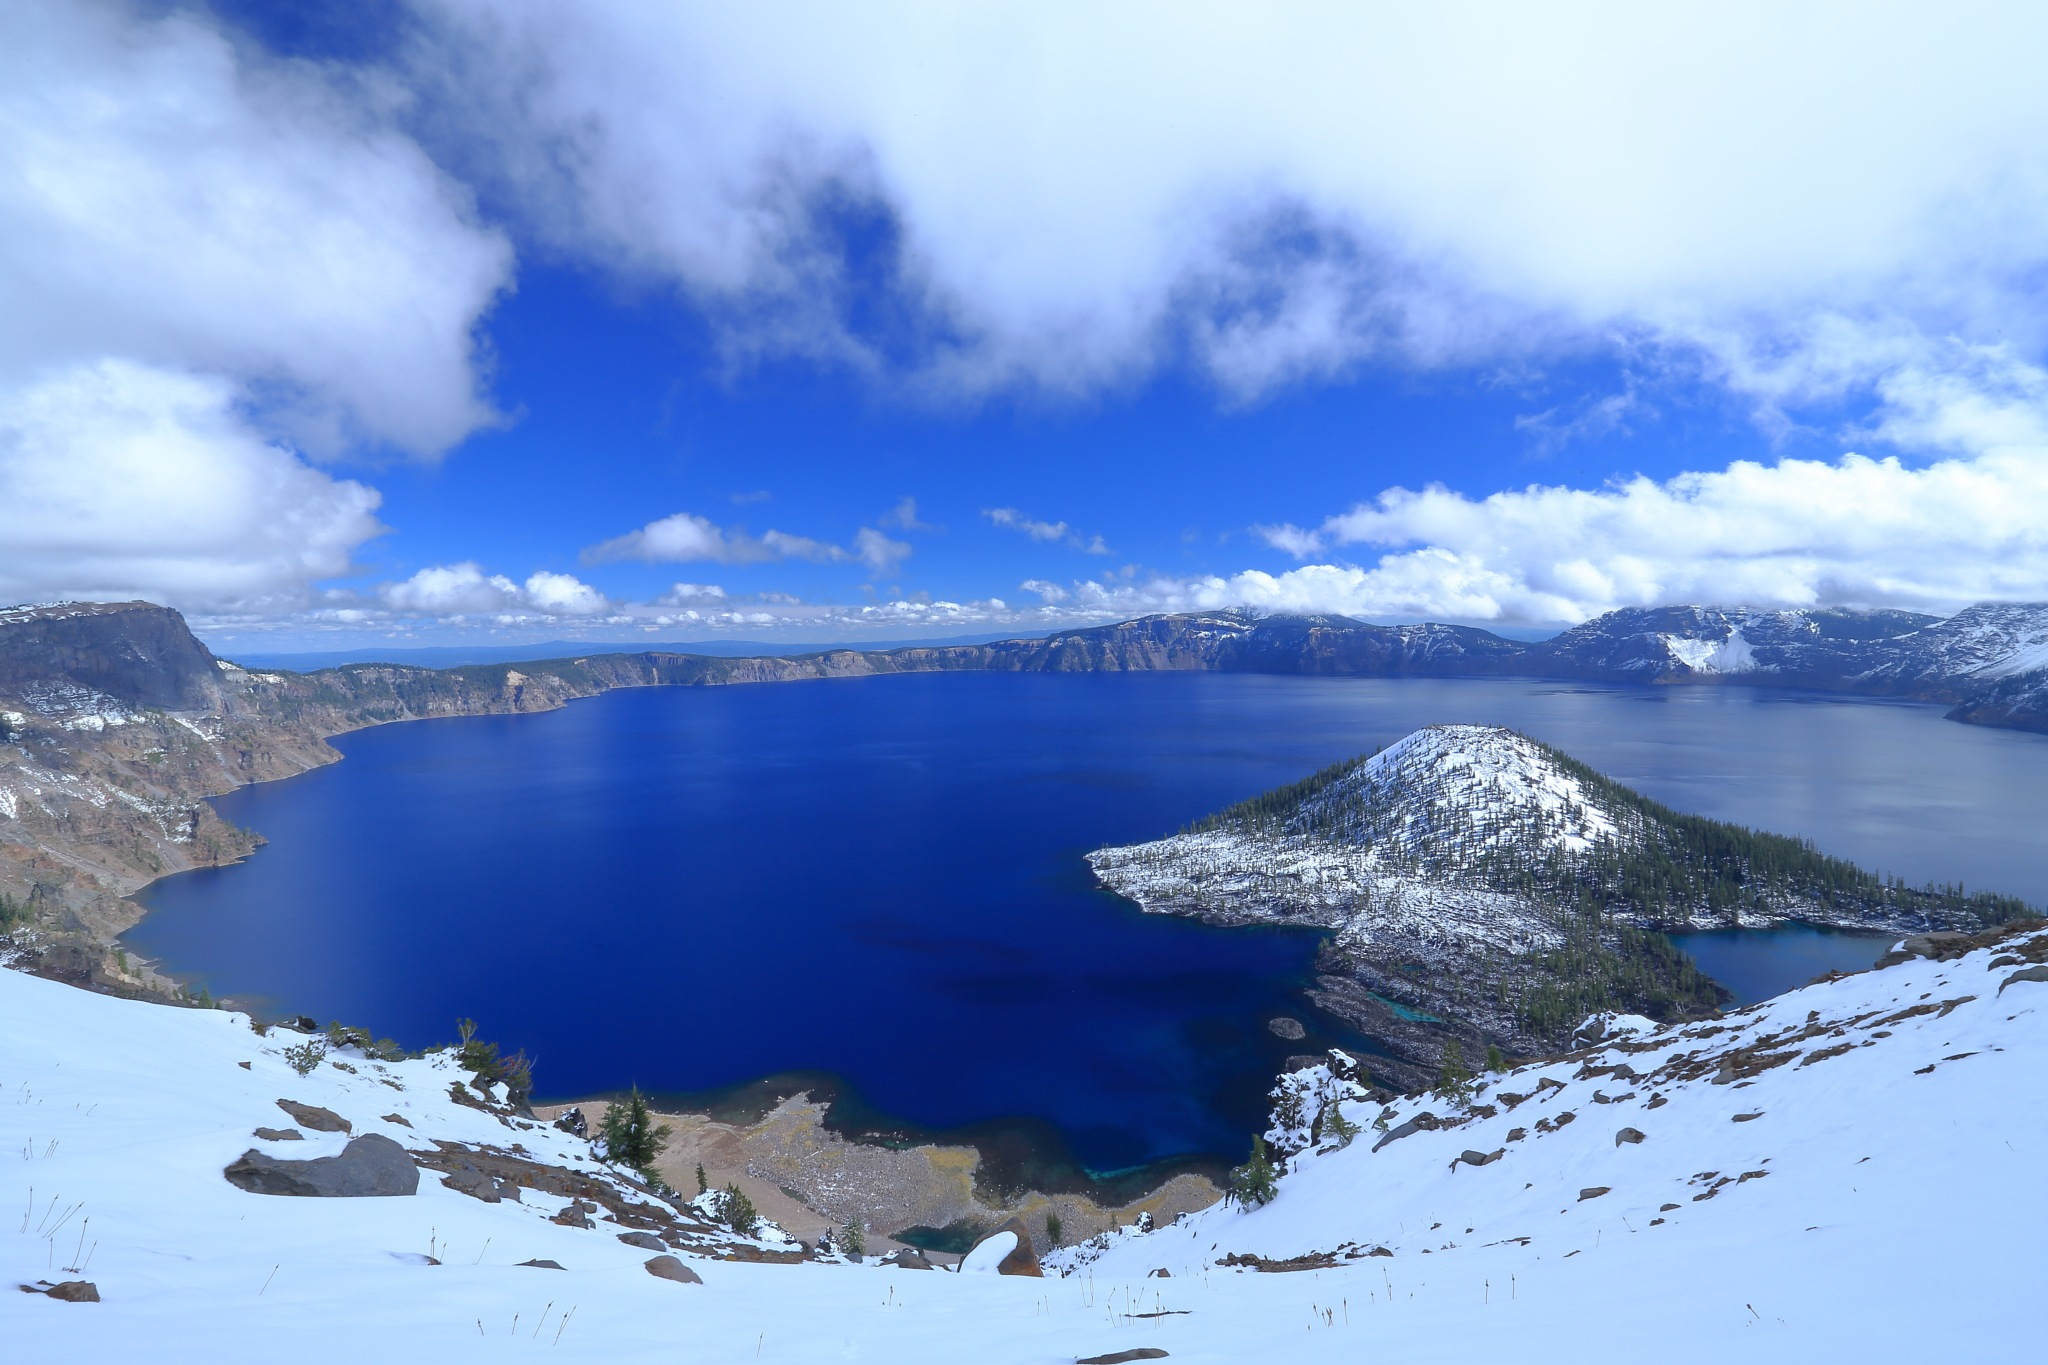 Crater Lake is famous for its deep blue color  by leecj0129